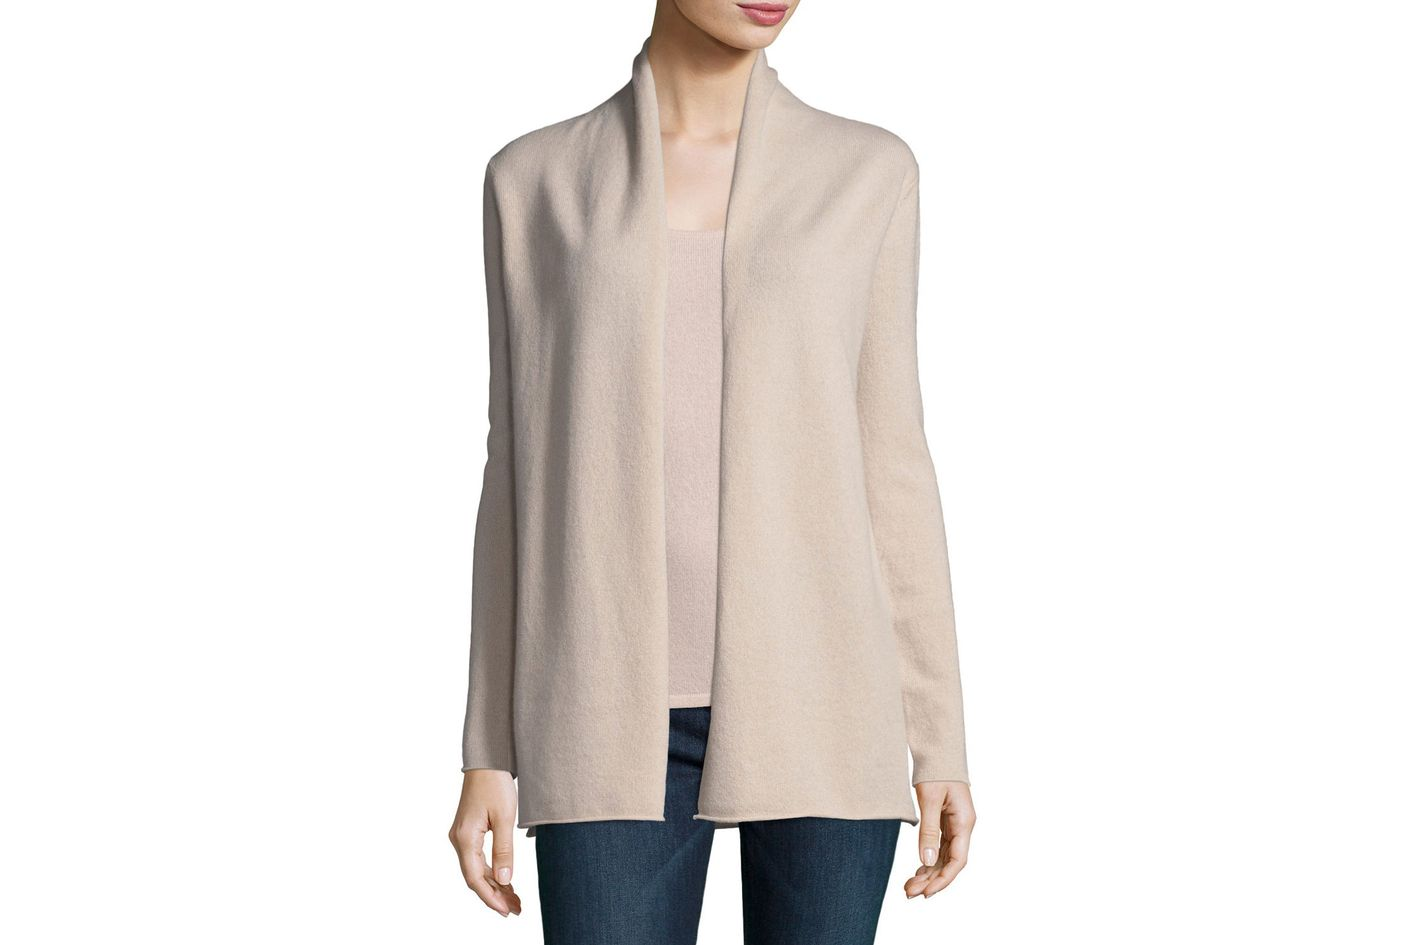 Neiman Marcus Cashmere Collection Classic Draped Cashmere Cardigan